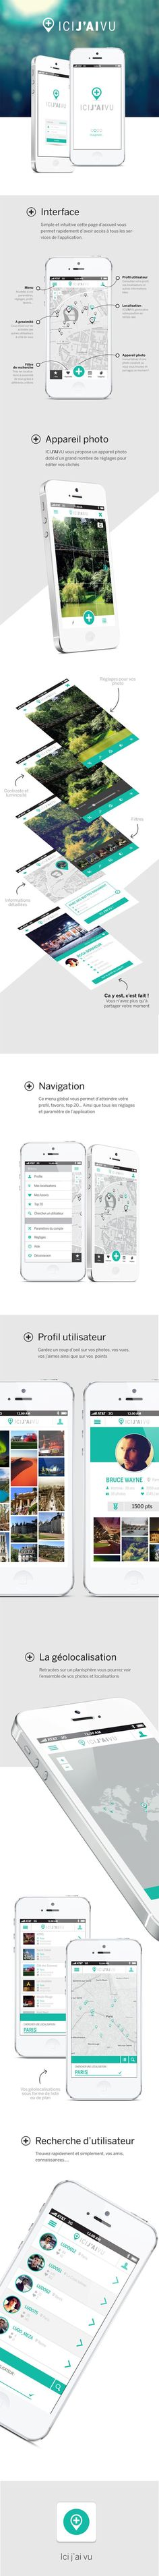 Application ICI J'AI VU by Nathalie Troucelier, via Behance: